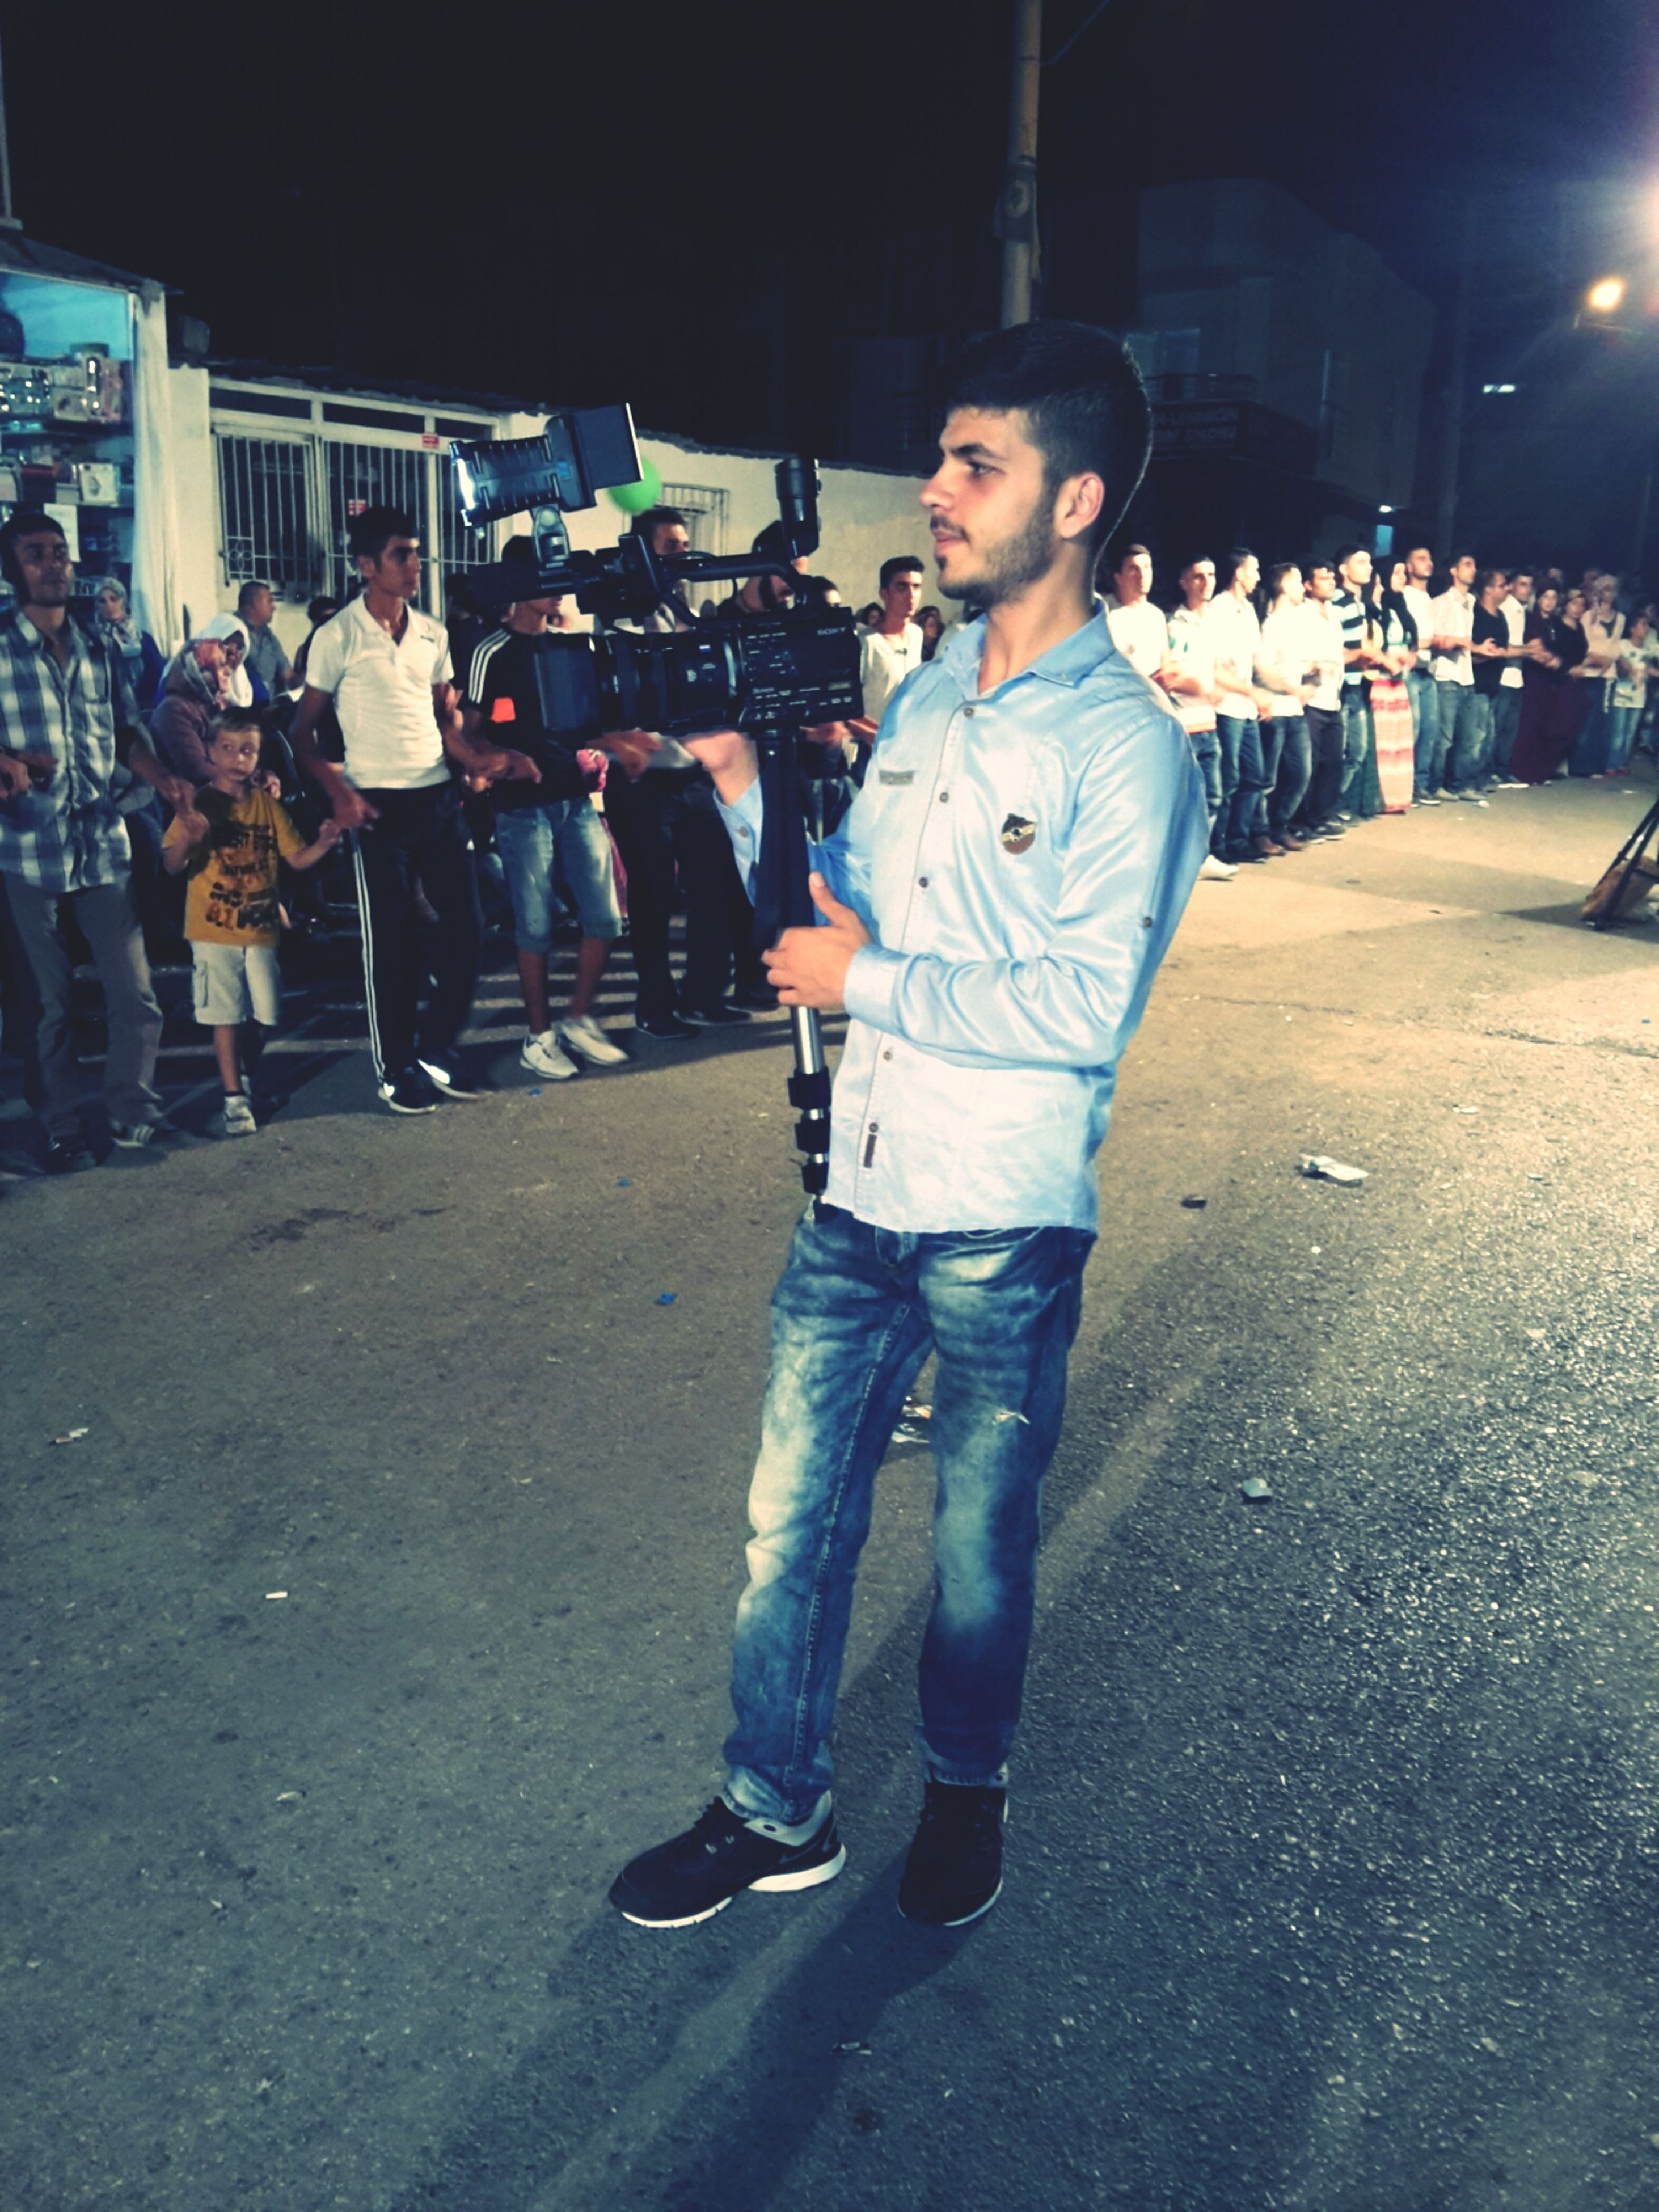 casual clothing, lifestyles, full length, night, leisure activity, street, person, standing, looking at camera, front view, portrait, childhood, elementary age, happiness, boys, road, smiling, outdoors